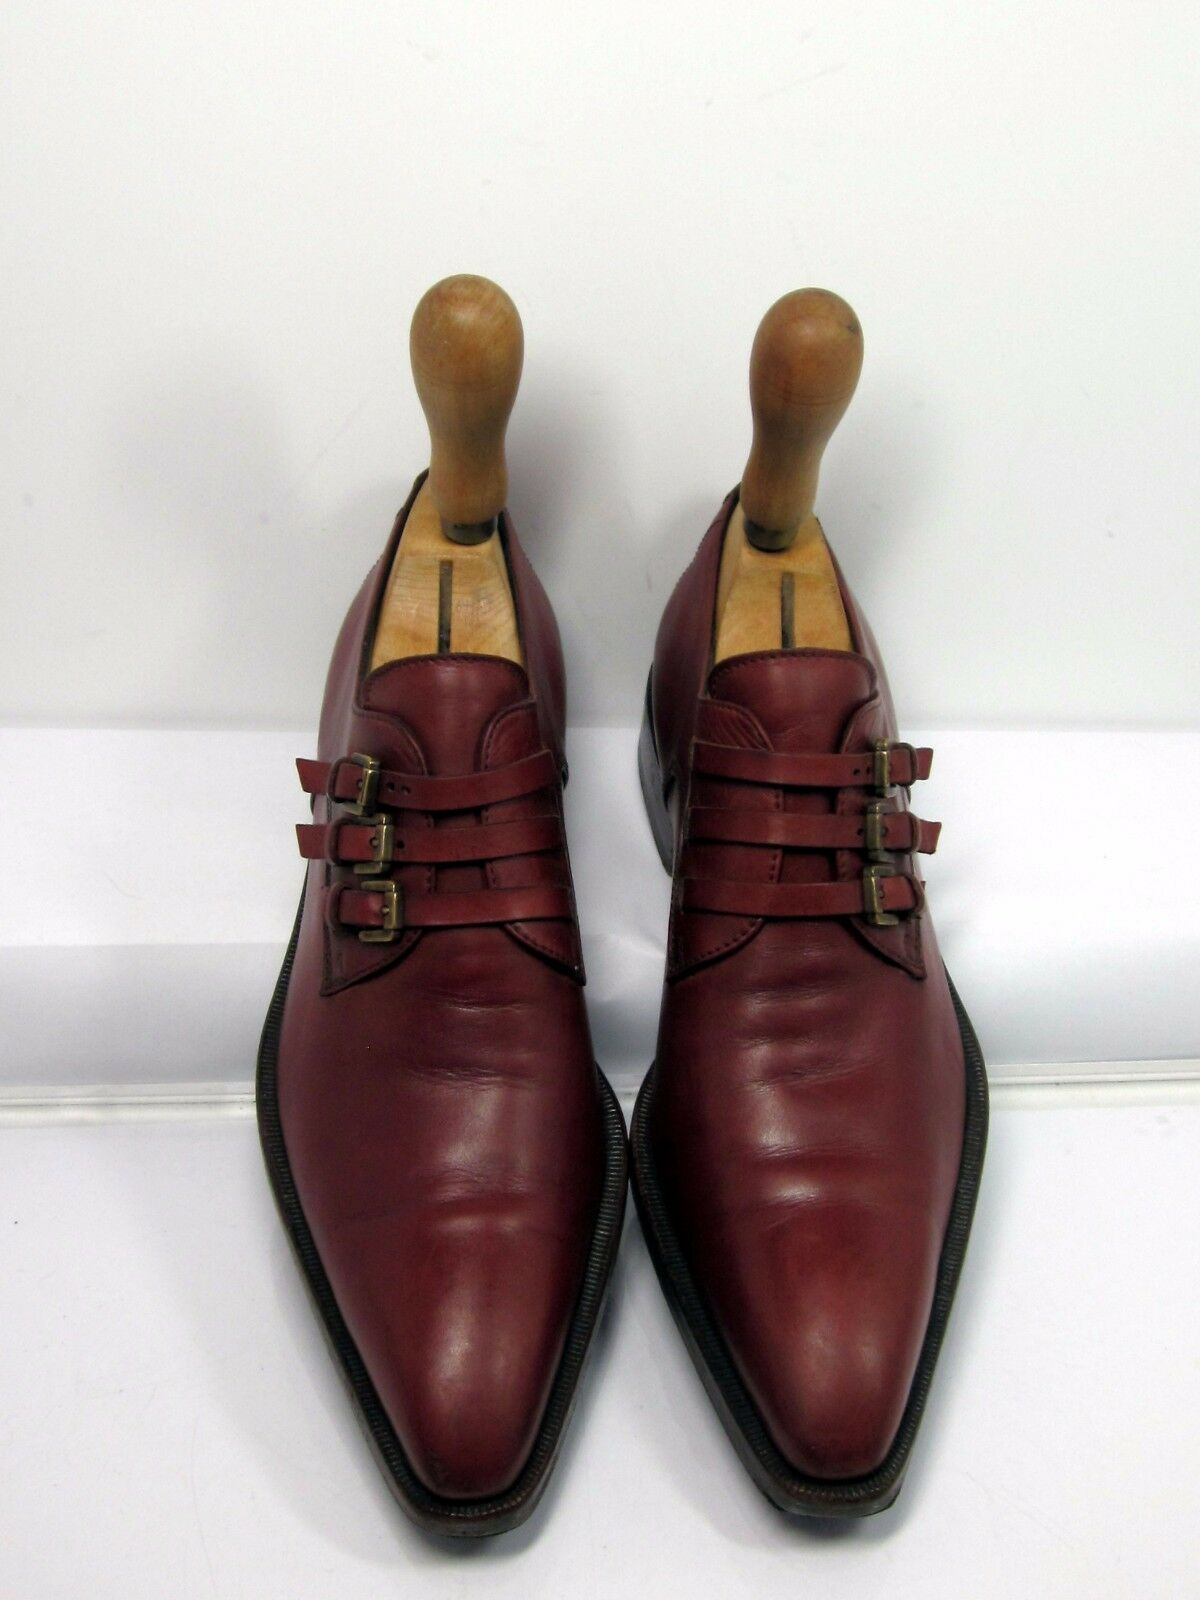 SERGIO ROSSI triple Monk Strap burgundy pelle SZ 36 Made in Italy HARD TO FIND